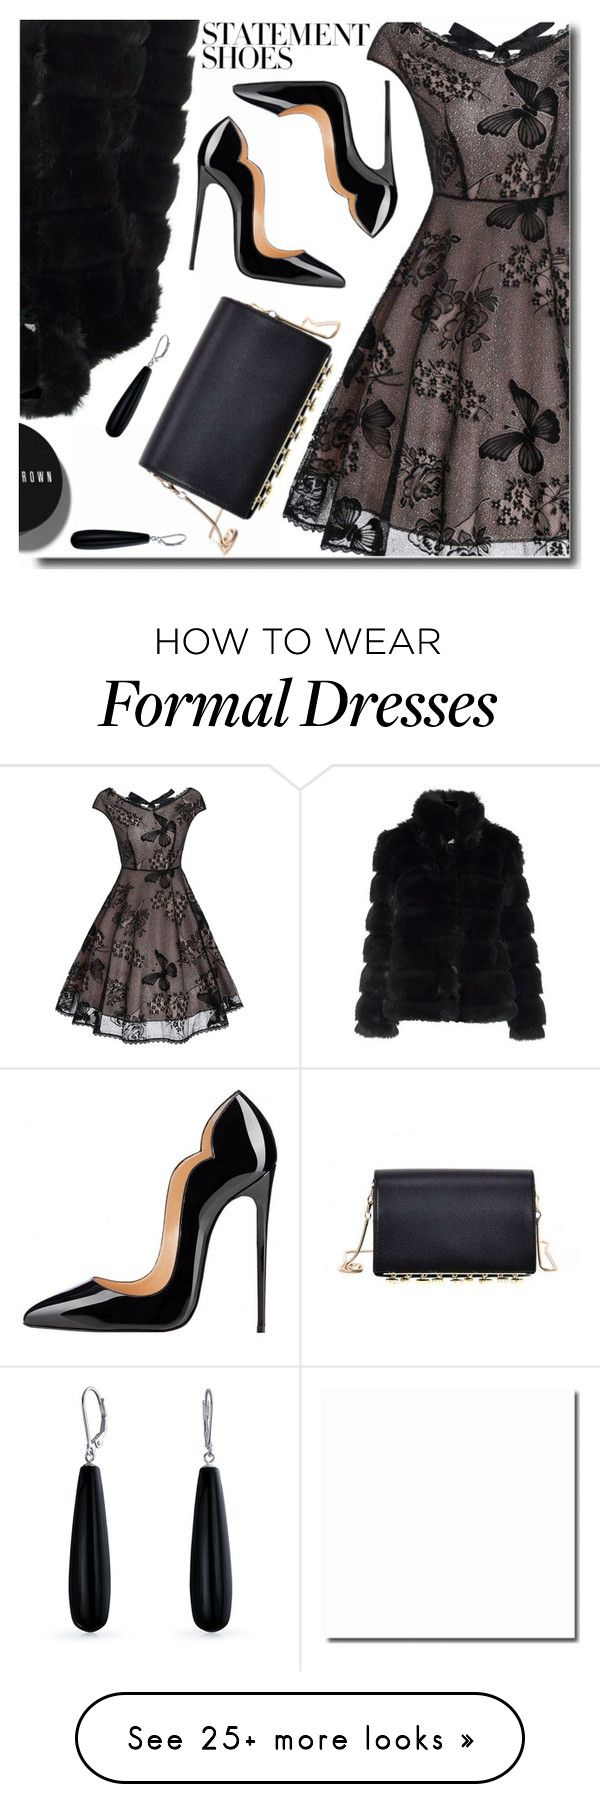 """""""#PolyPresents: Party Dresses"""" by soks on Polyvore featuring Bobbi Brown Cosmetics, Bling Jewelry, contestentry and polyPresents"""